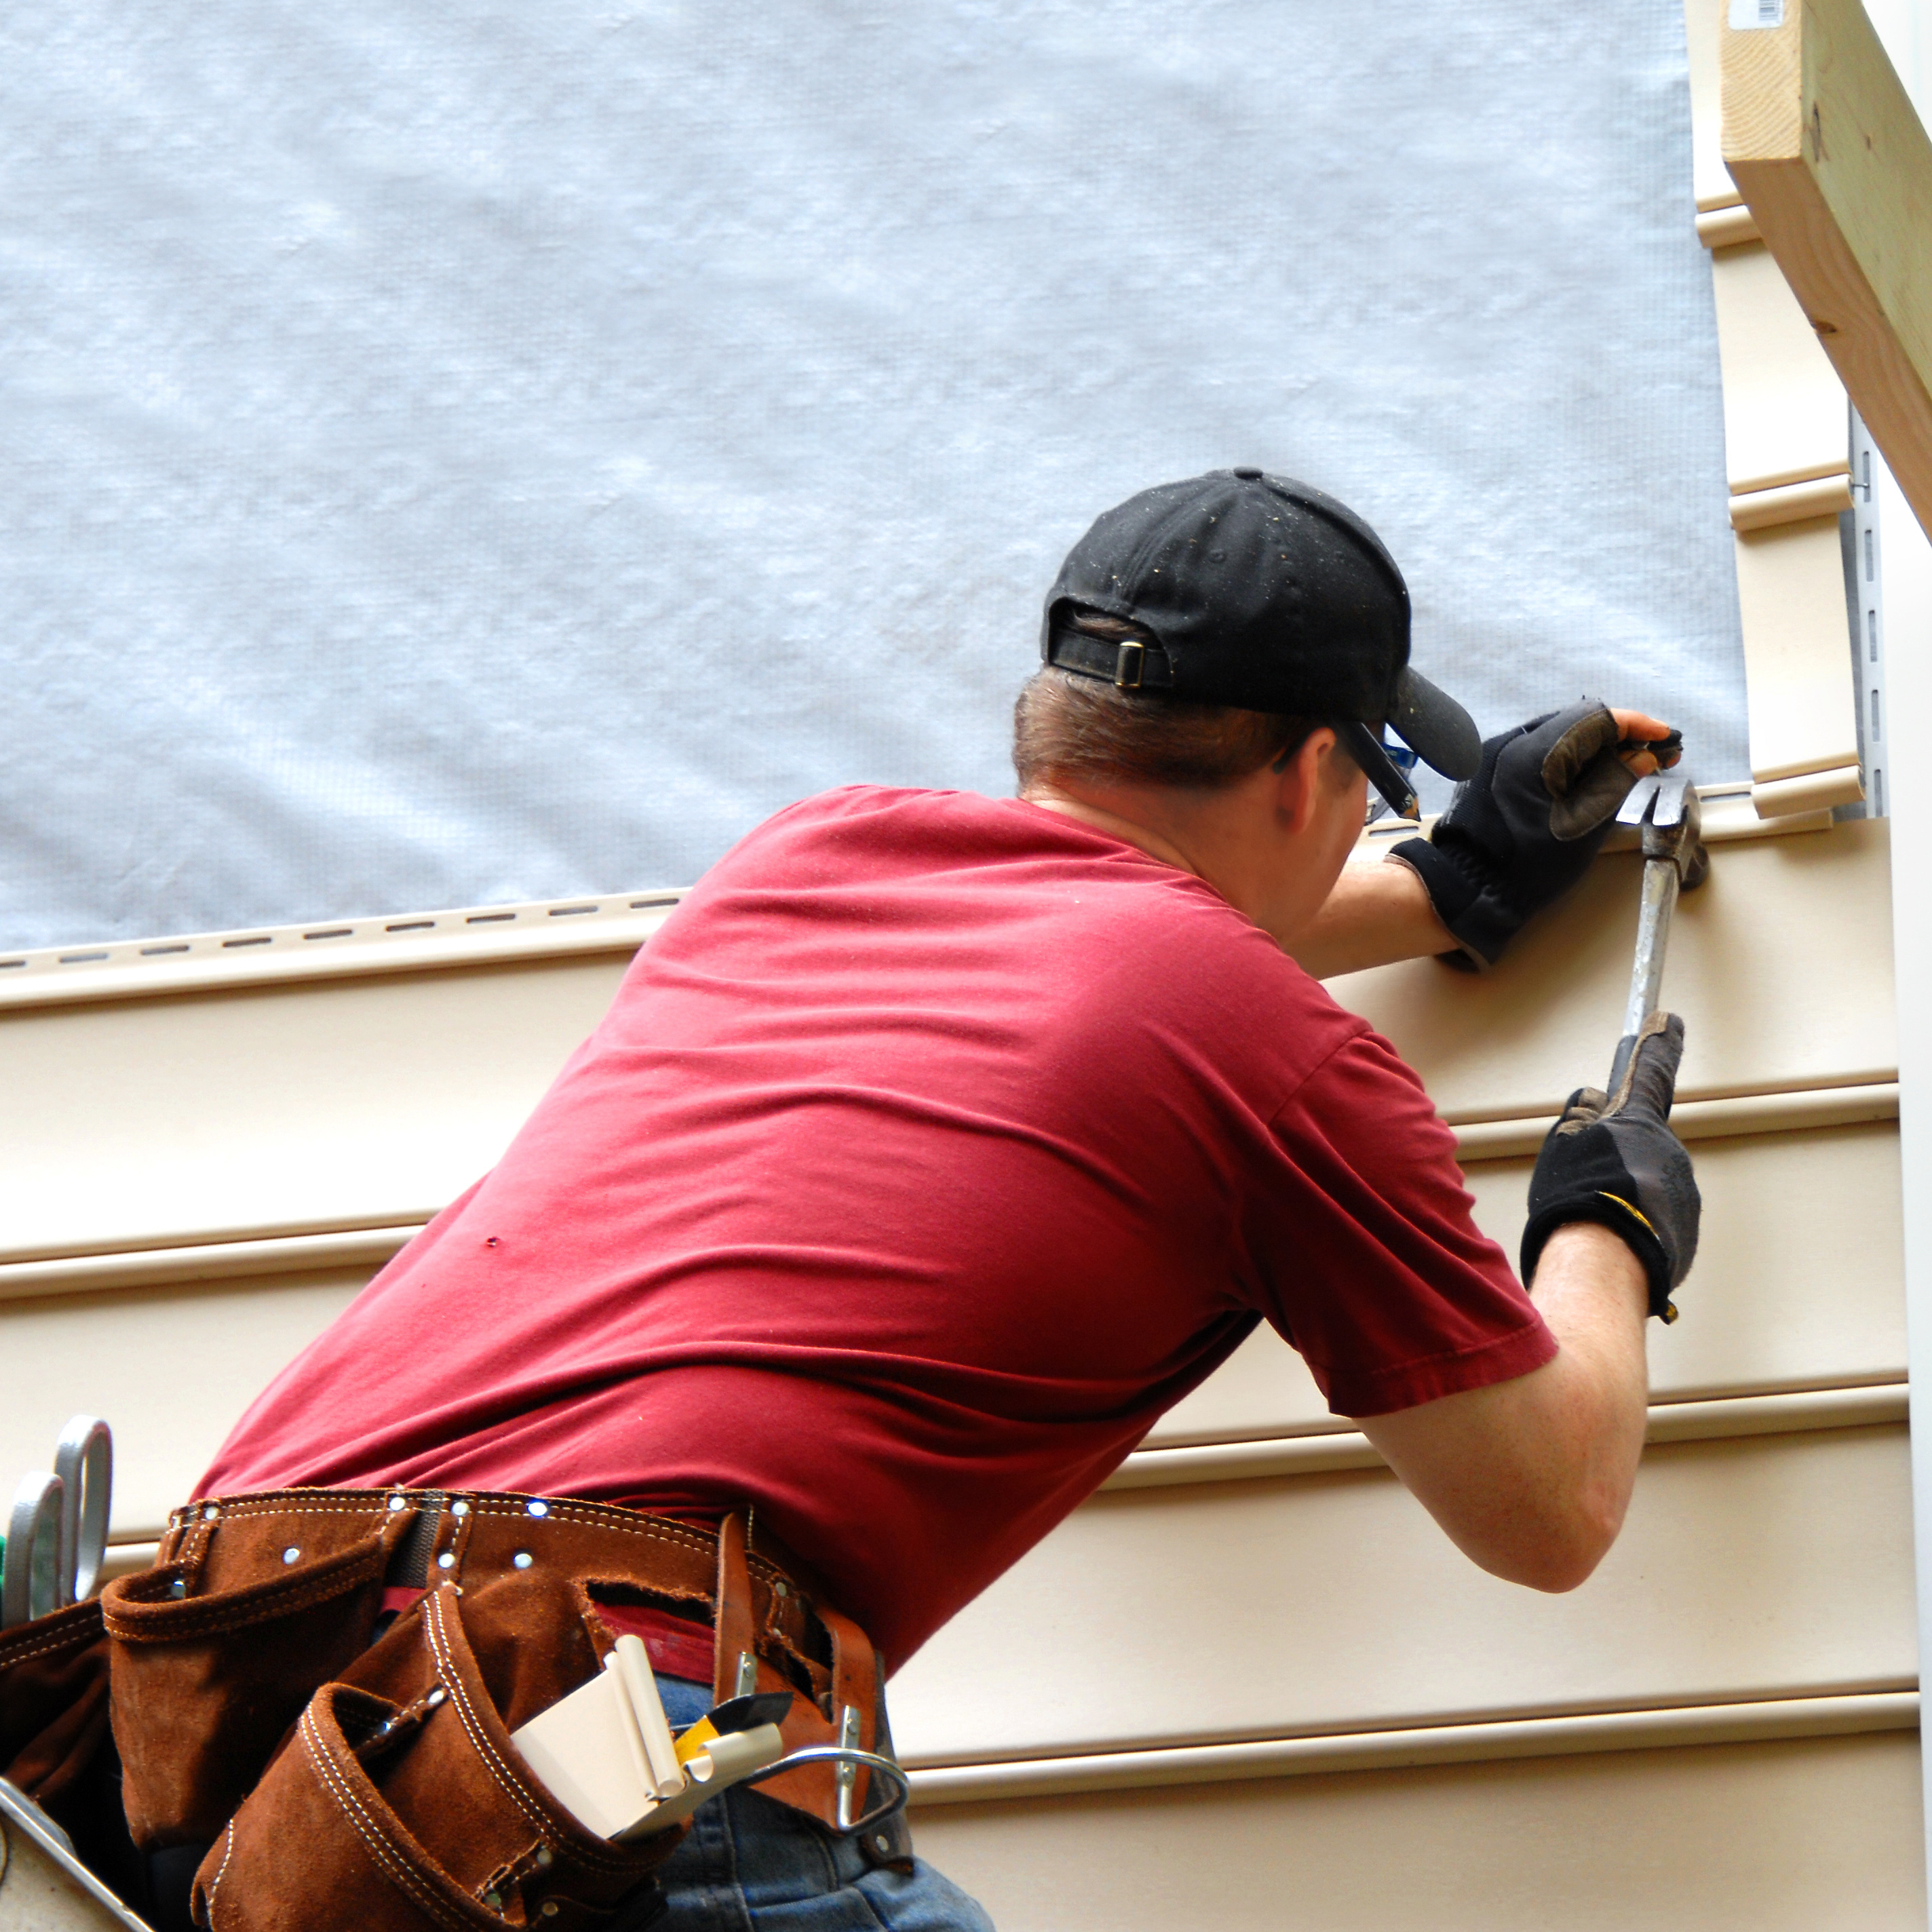 A worker adding siding to a house